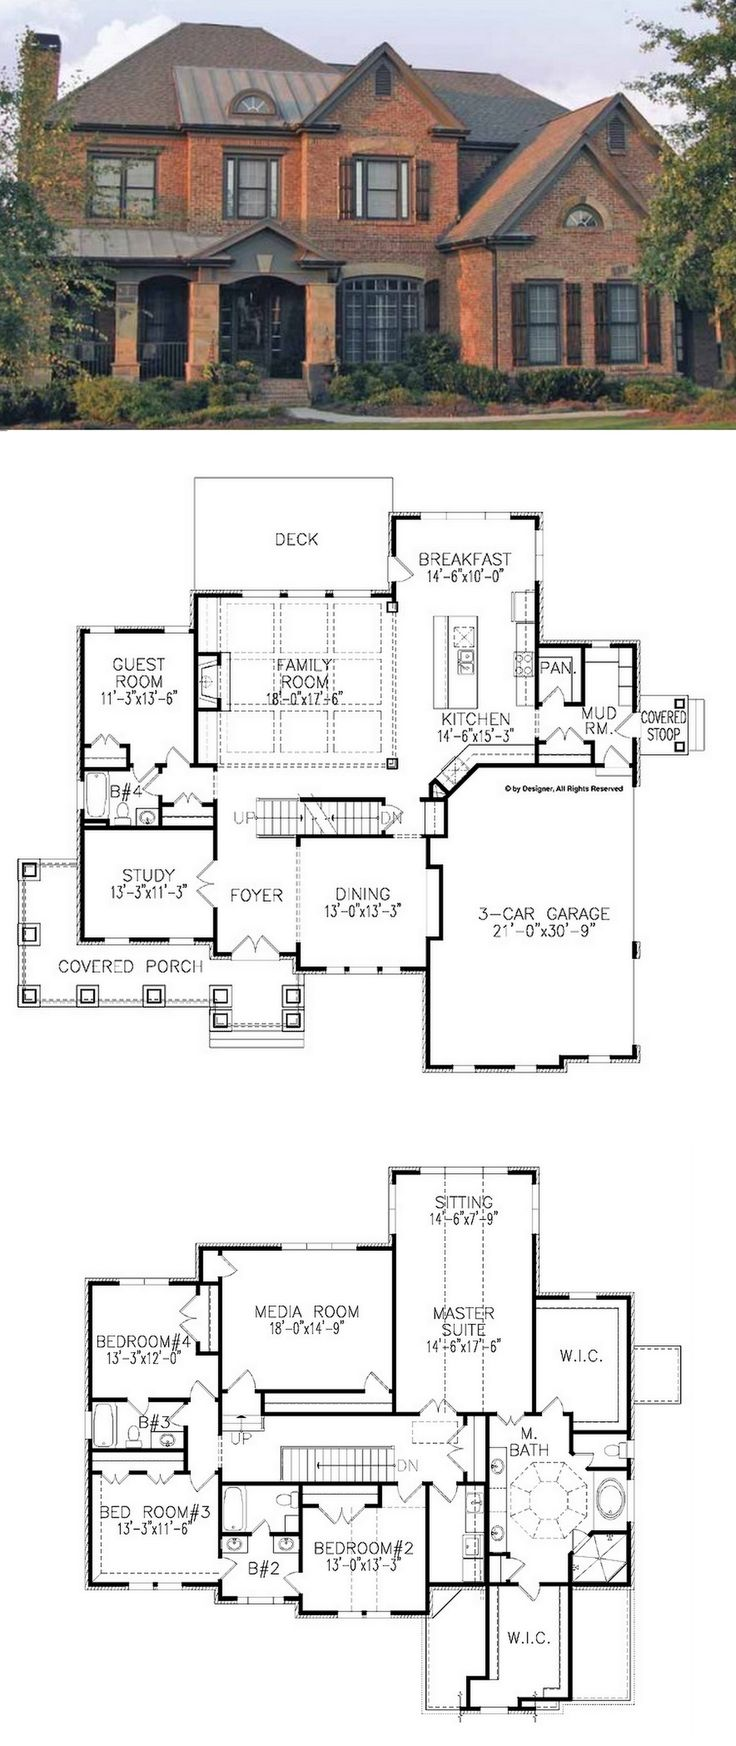 Best 25 5 bedroom house plans ideas only on pinterest 4 bedroom house plans beautiful house - Bedroom home plan ...